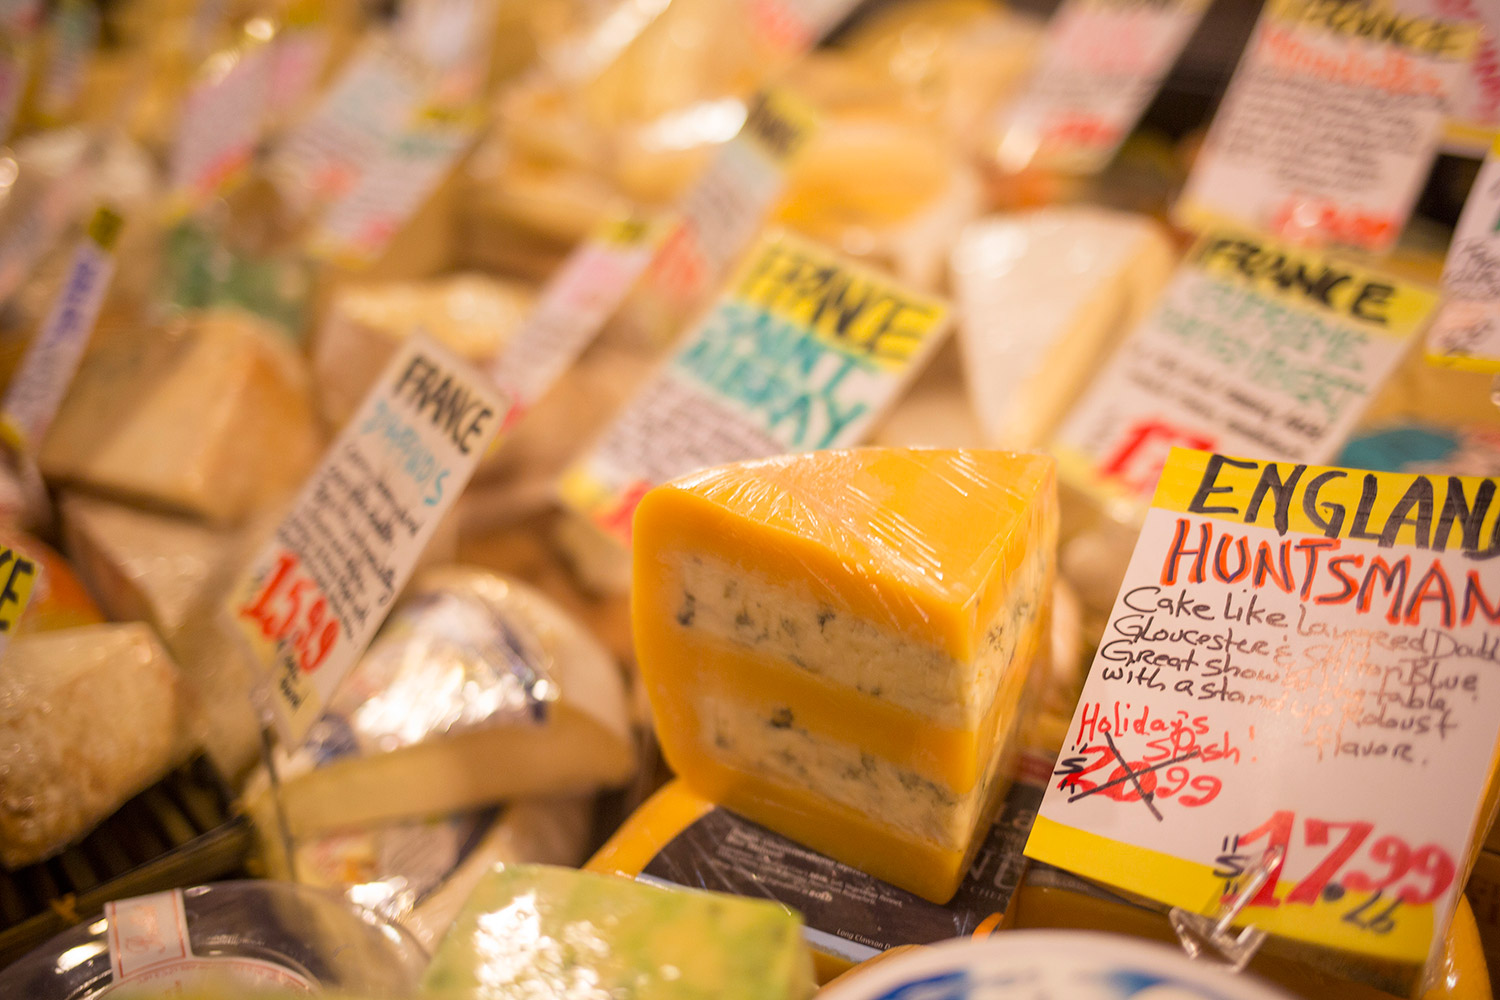 Cheese is on sale at K. Horton Specialty Foods in downtown Portland as the owner prepares to close the shop.